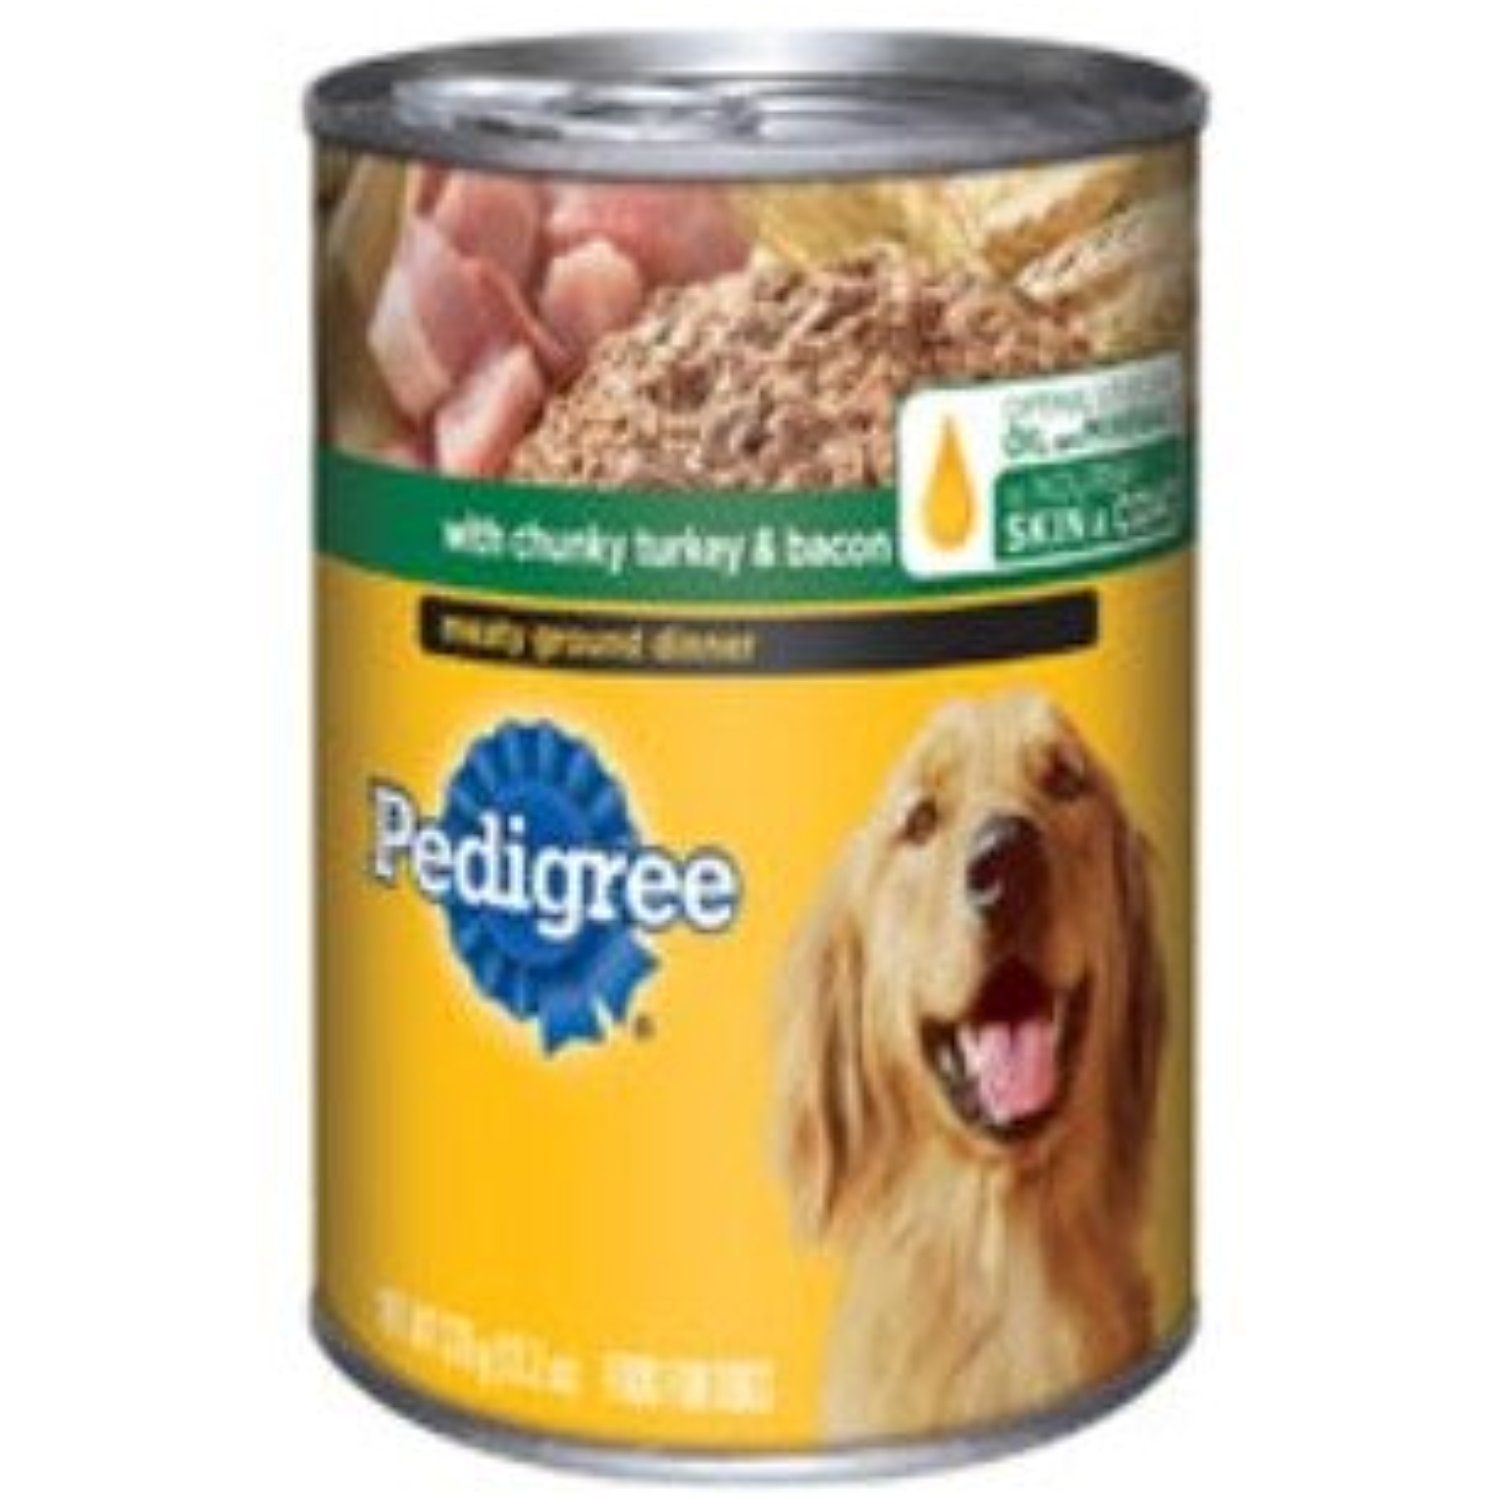 Pedigree 24 Piece Chunky Turkey And Bacon Pet Treat You Can Click On The Image For Add Dog Food Recipes Healthy Dog Food Recipes Dry Dog Food